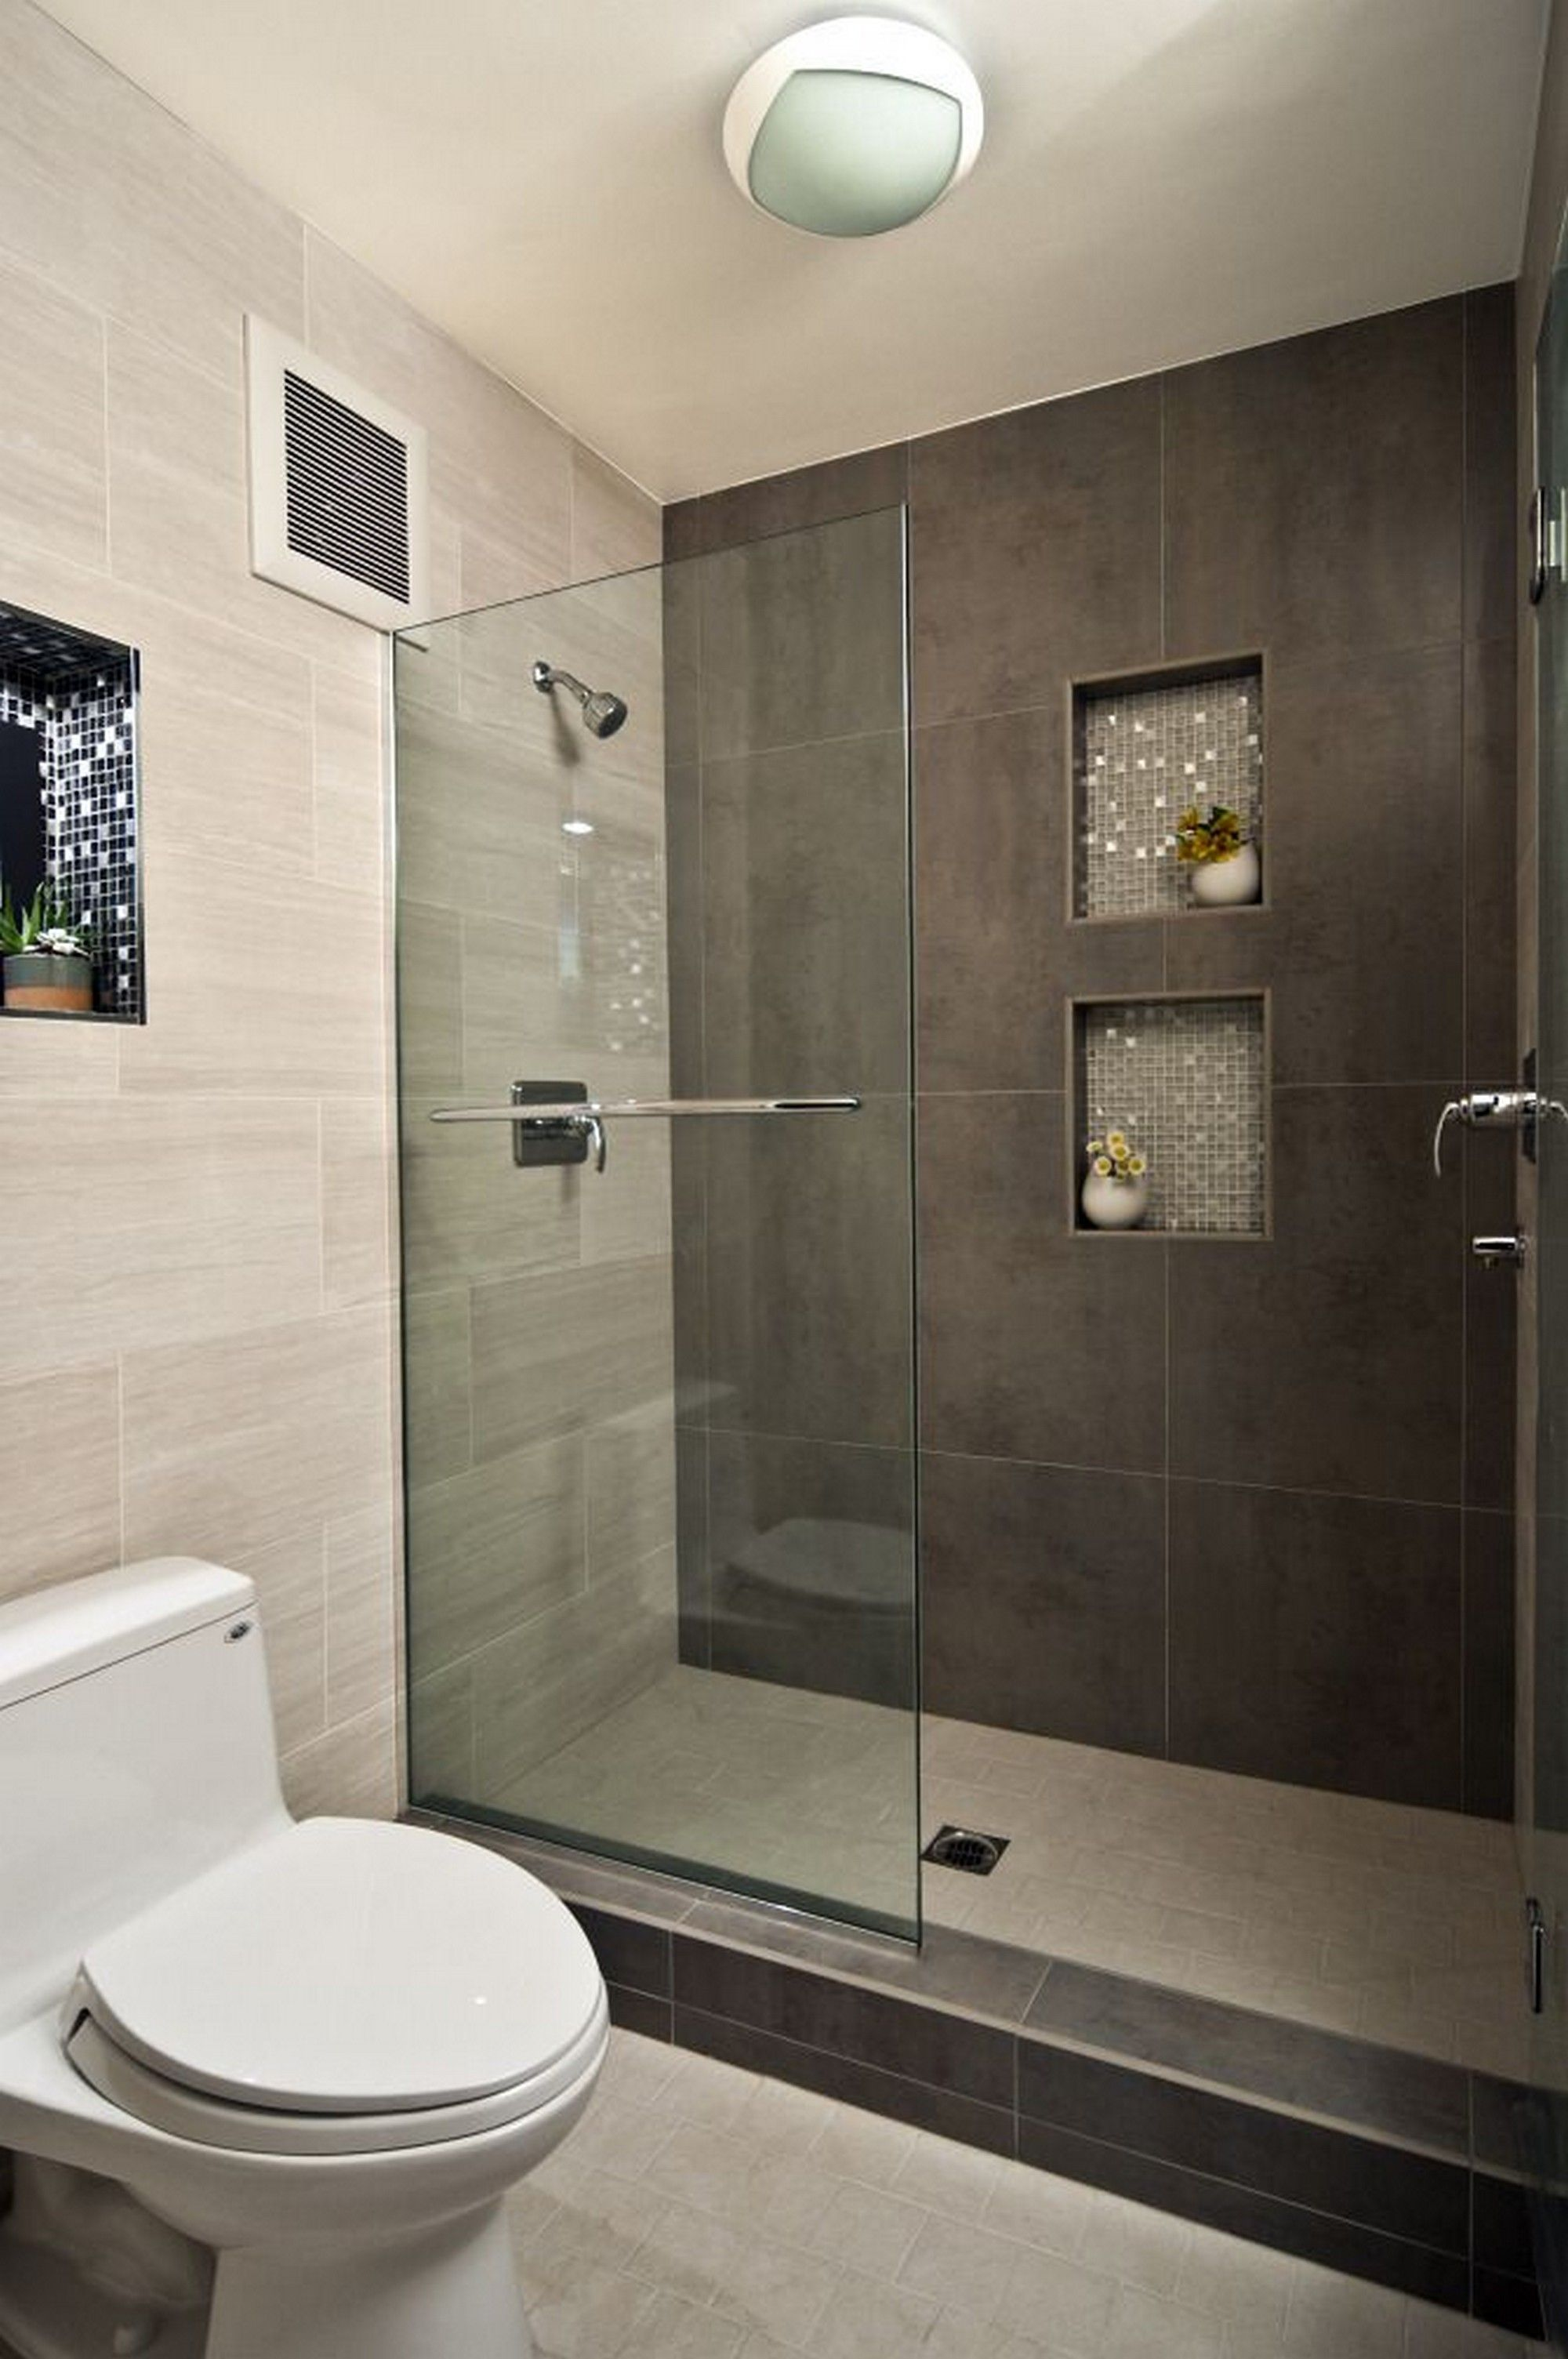 Bathroom Designs Photos modern bathroom design ideas with walk in shower | small bathroom